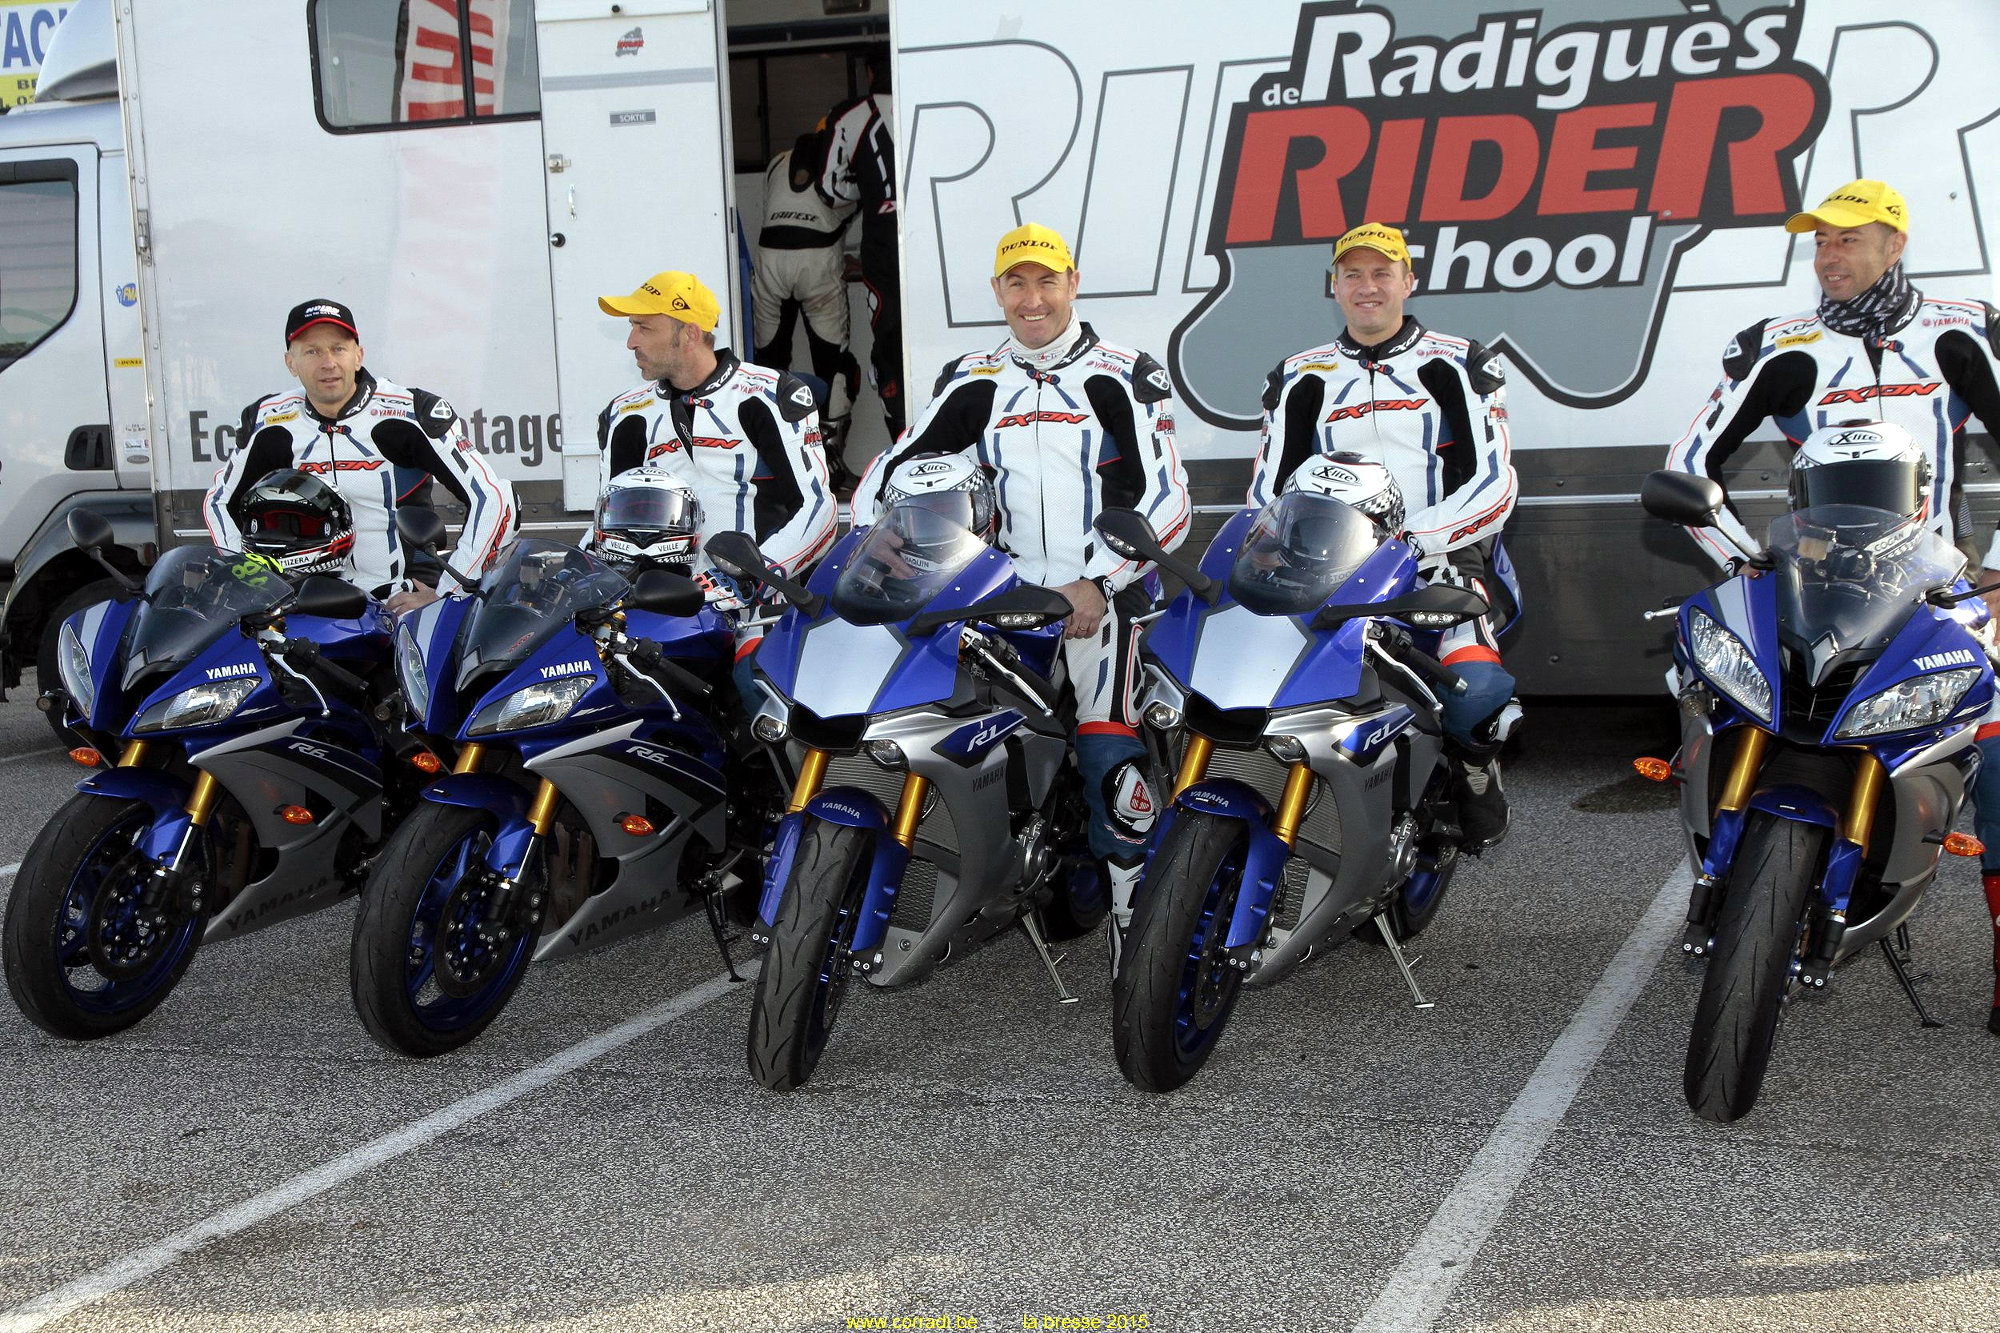 Moniteurs De Radiguès Rider School 2018